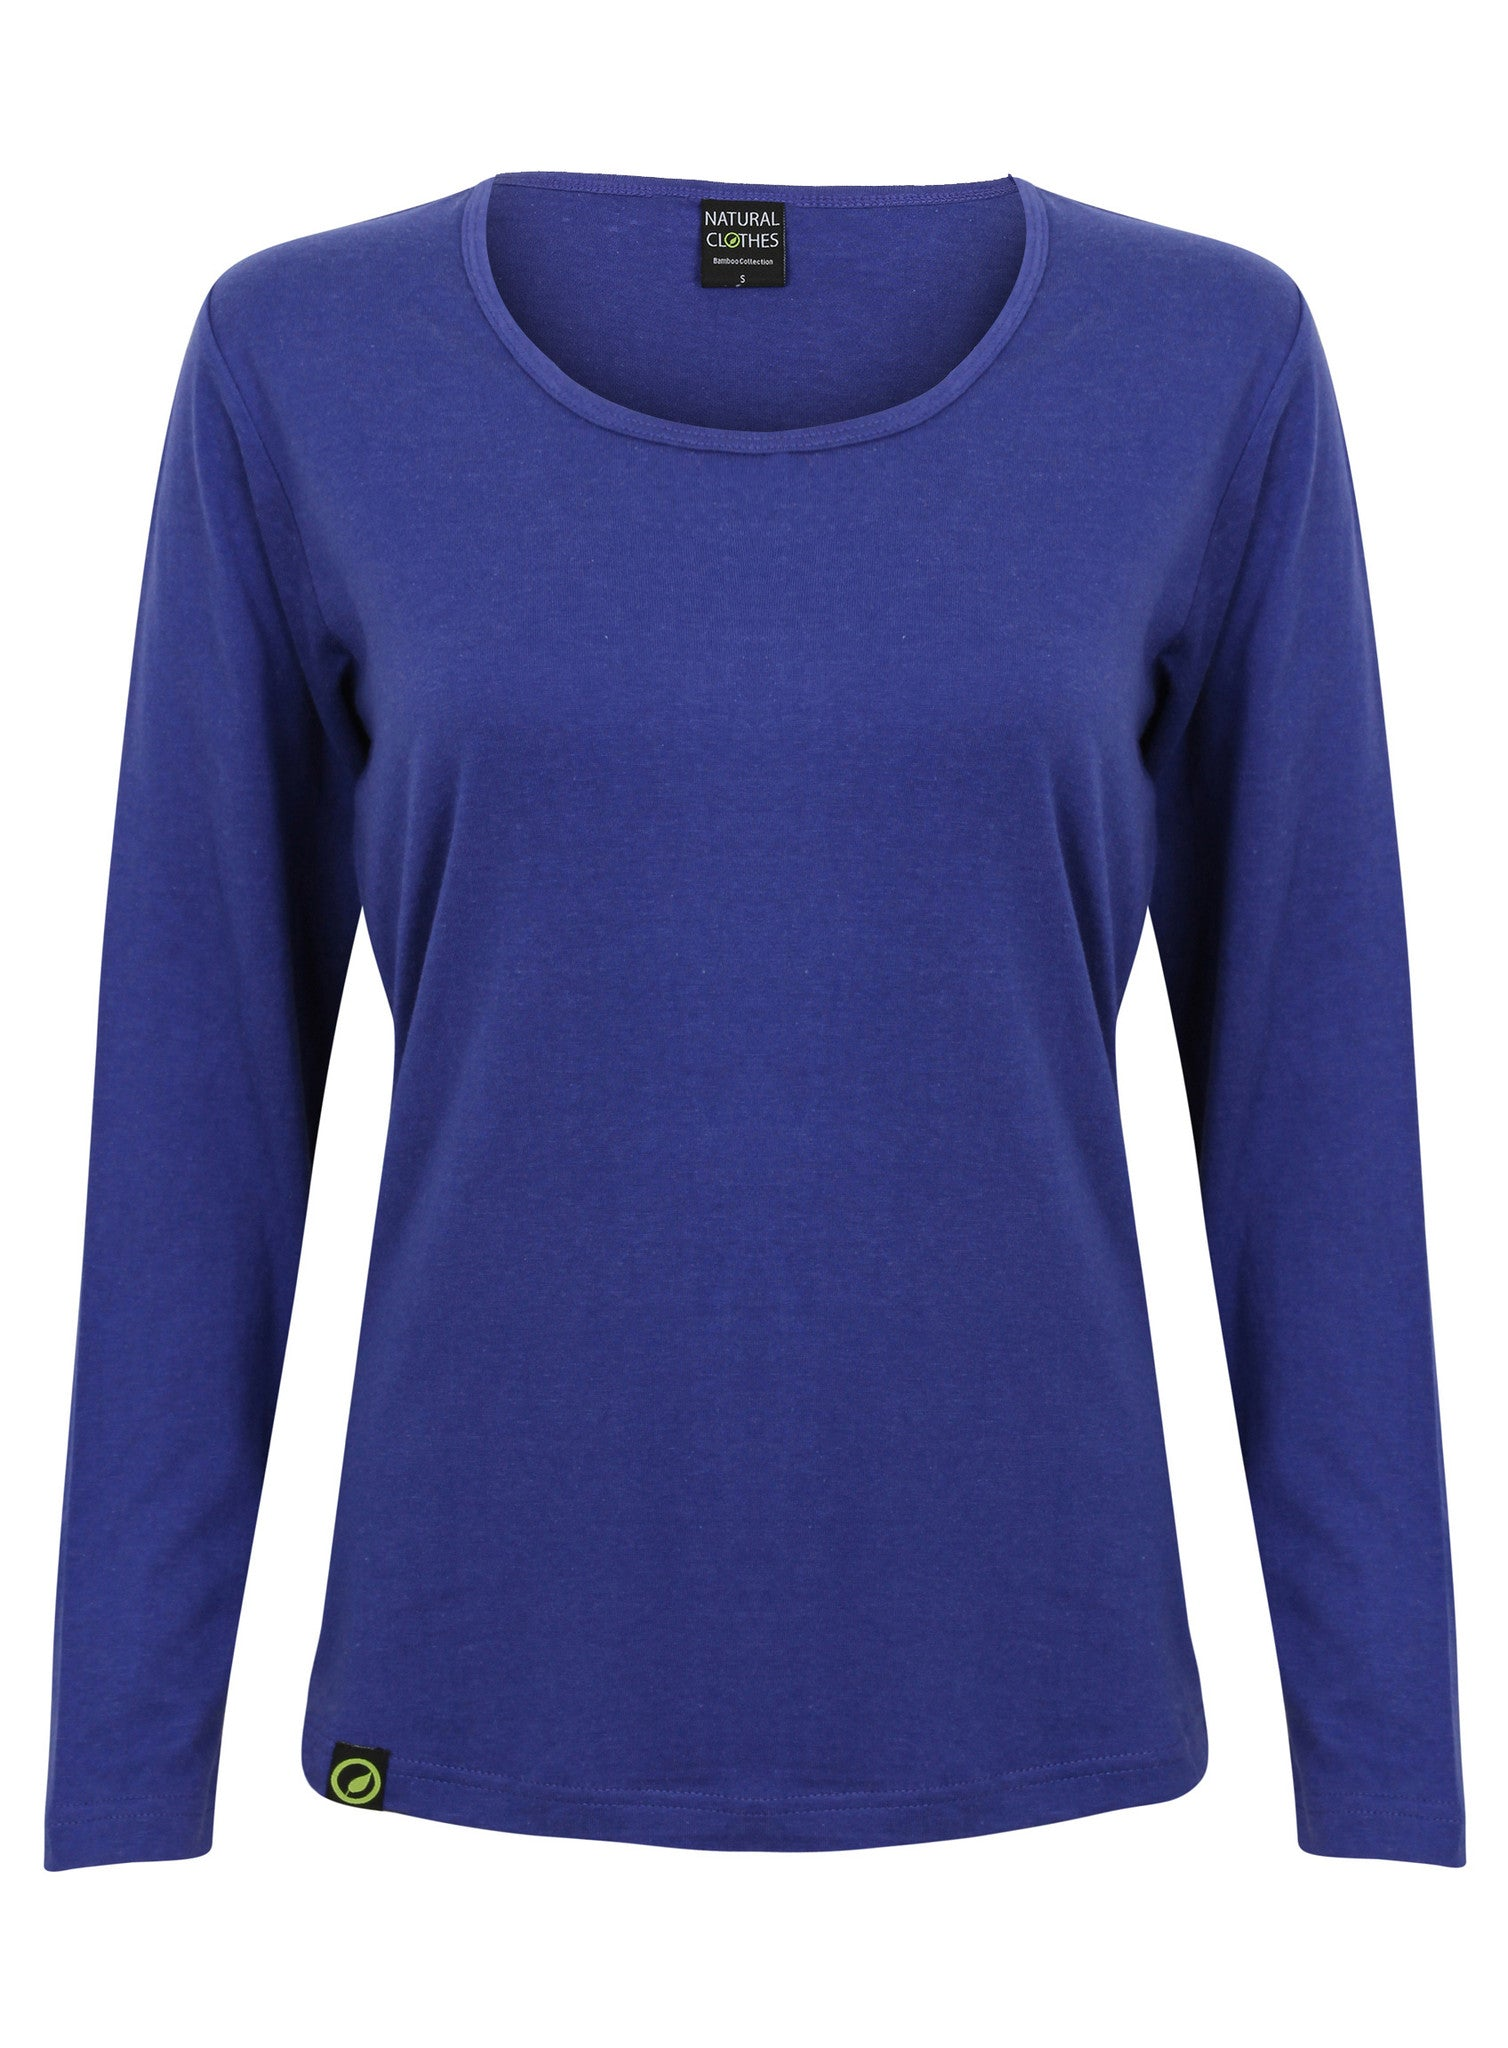 Bamboo Long Sleeve Top Blue - Natural Clothes Bamboo Clothing & Accessories for Men & Women